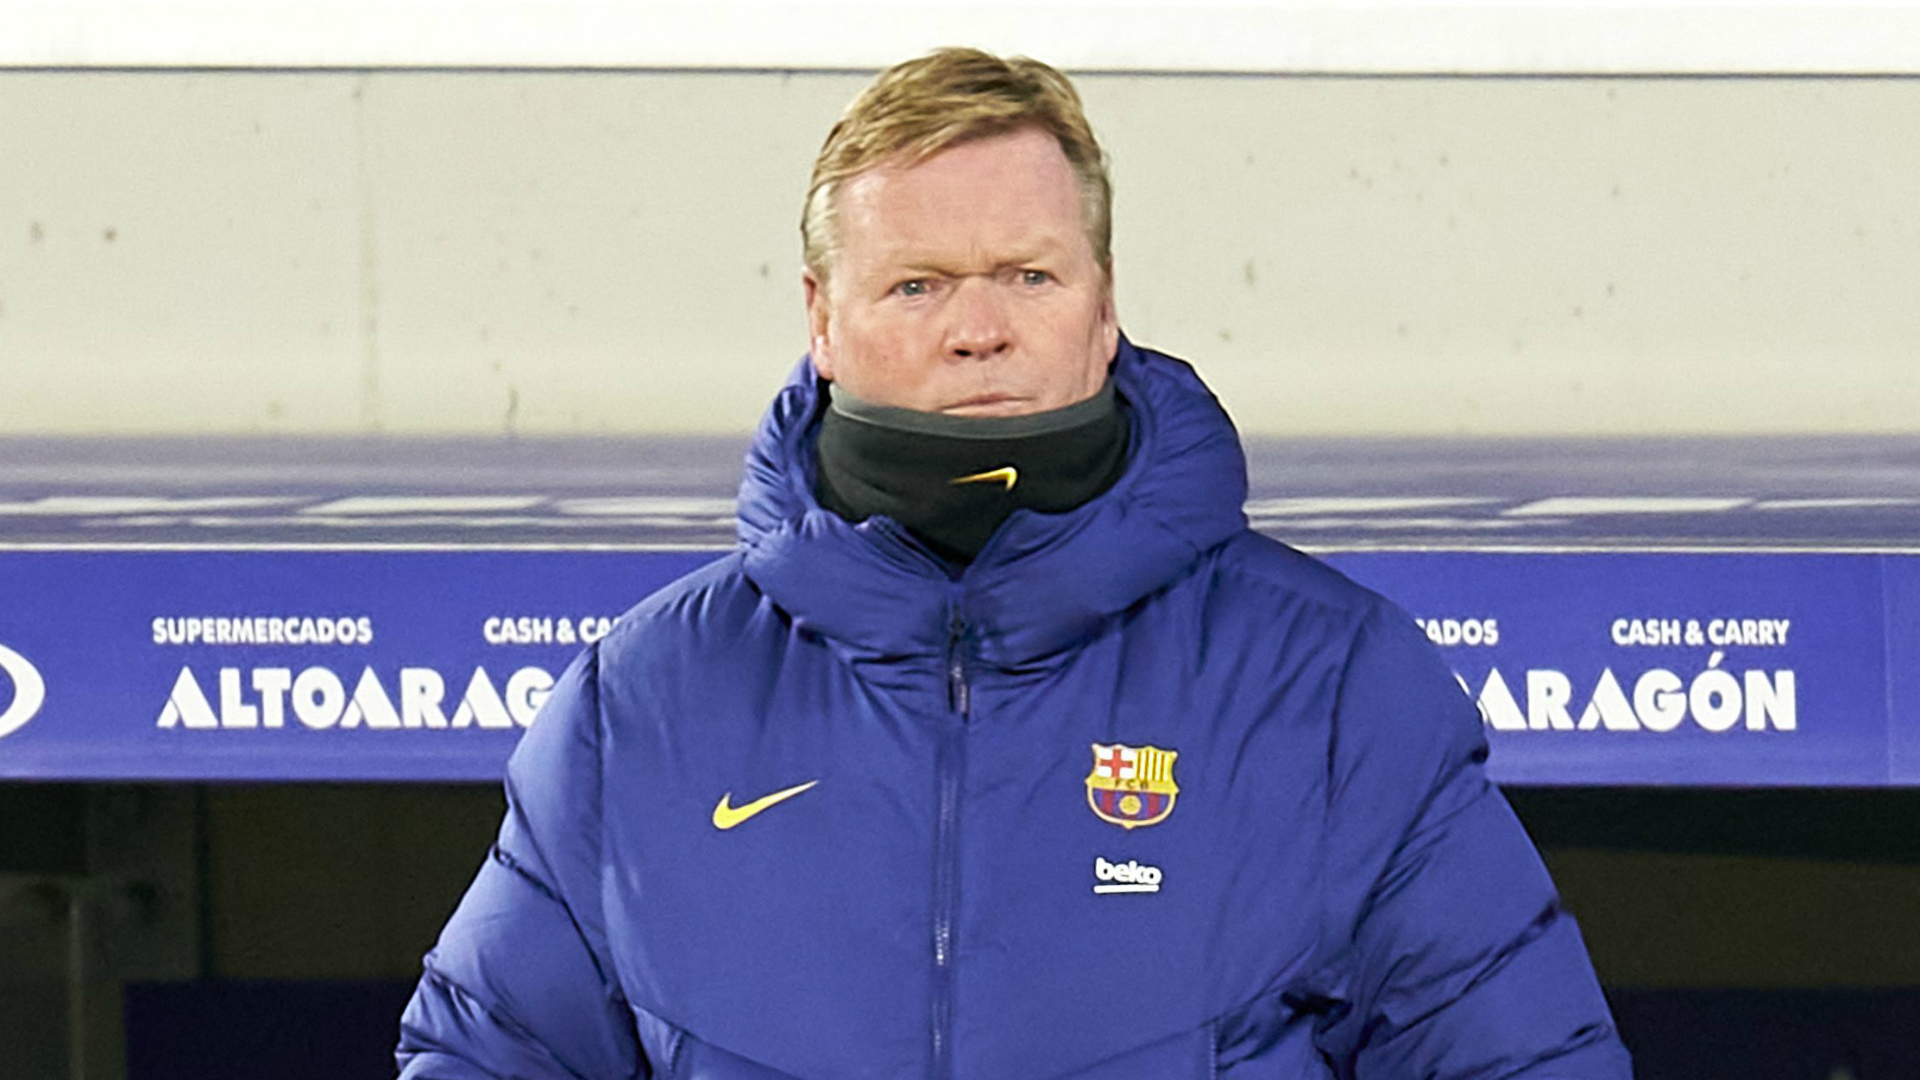 We have to be realistic – Koeman claims Barcelona are not ready to win major trophies